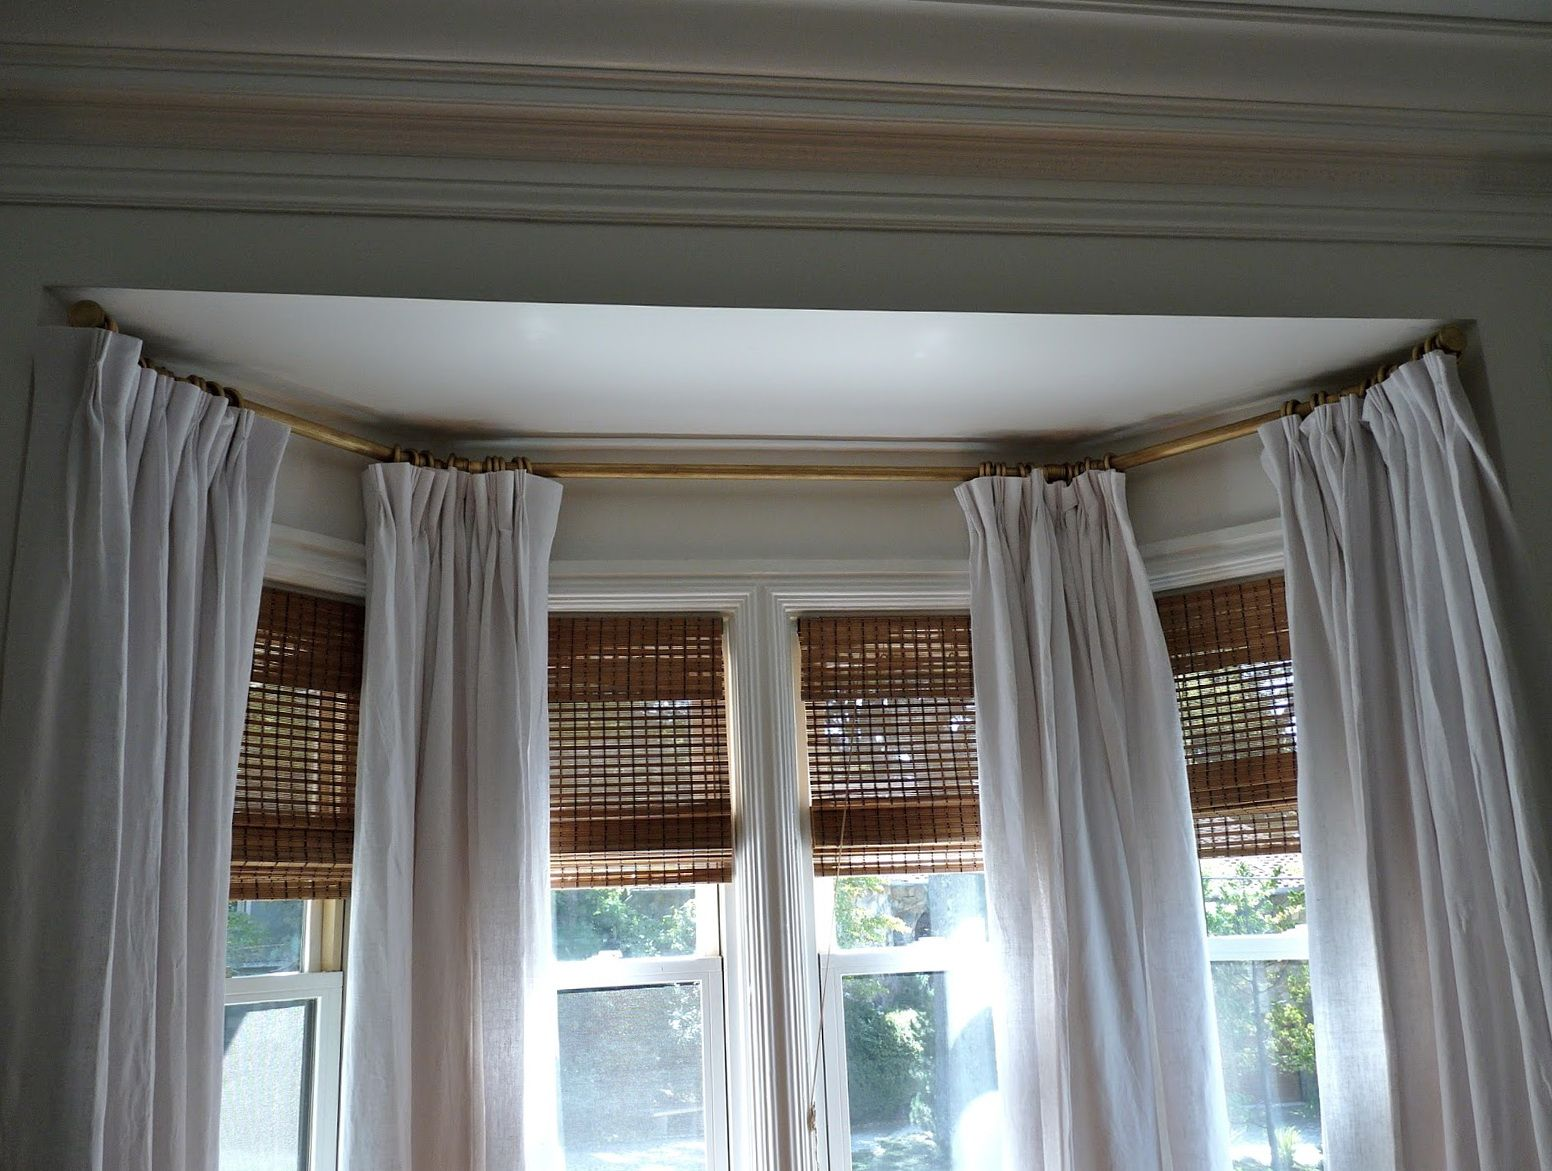 Bay Window Curtain Track Ceiling Fix Decoracao